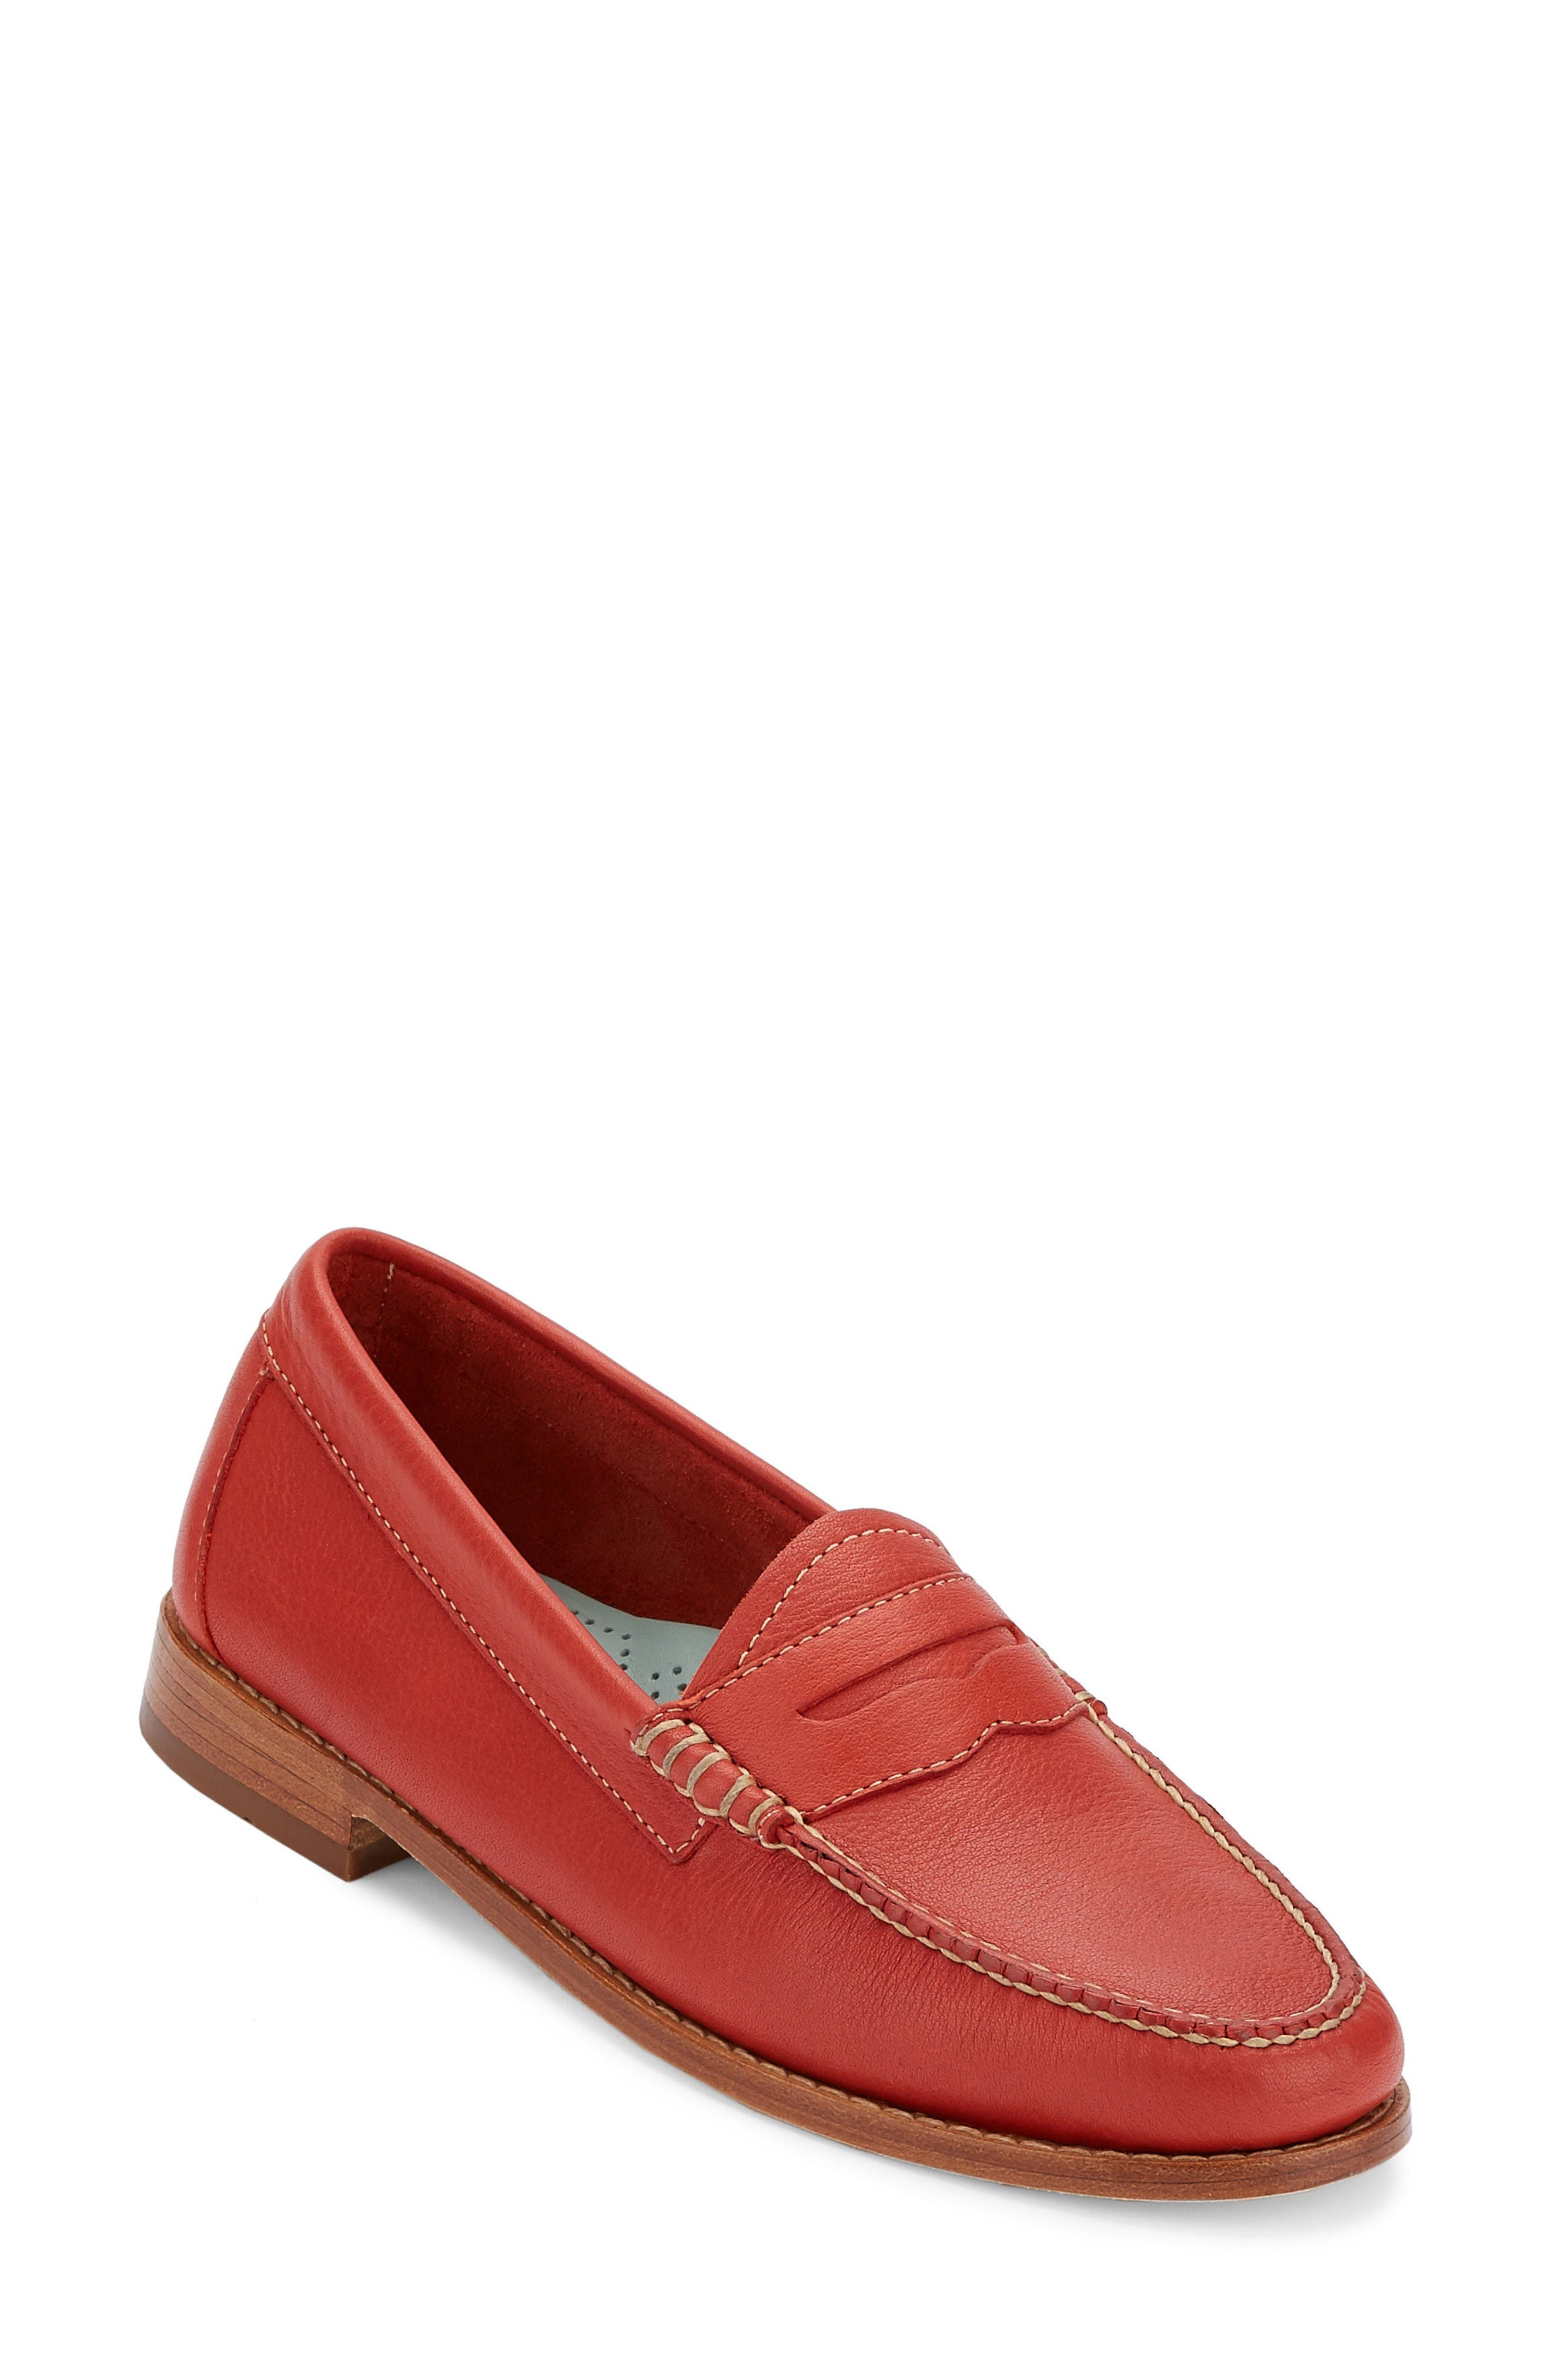 'Whitney' Loafer,                             Main thumbnail 1, color,                             Poppy Leather